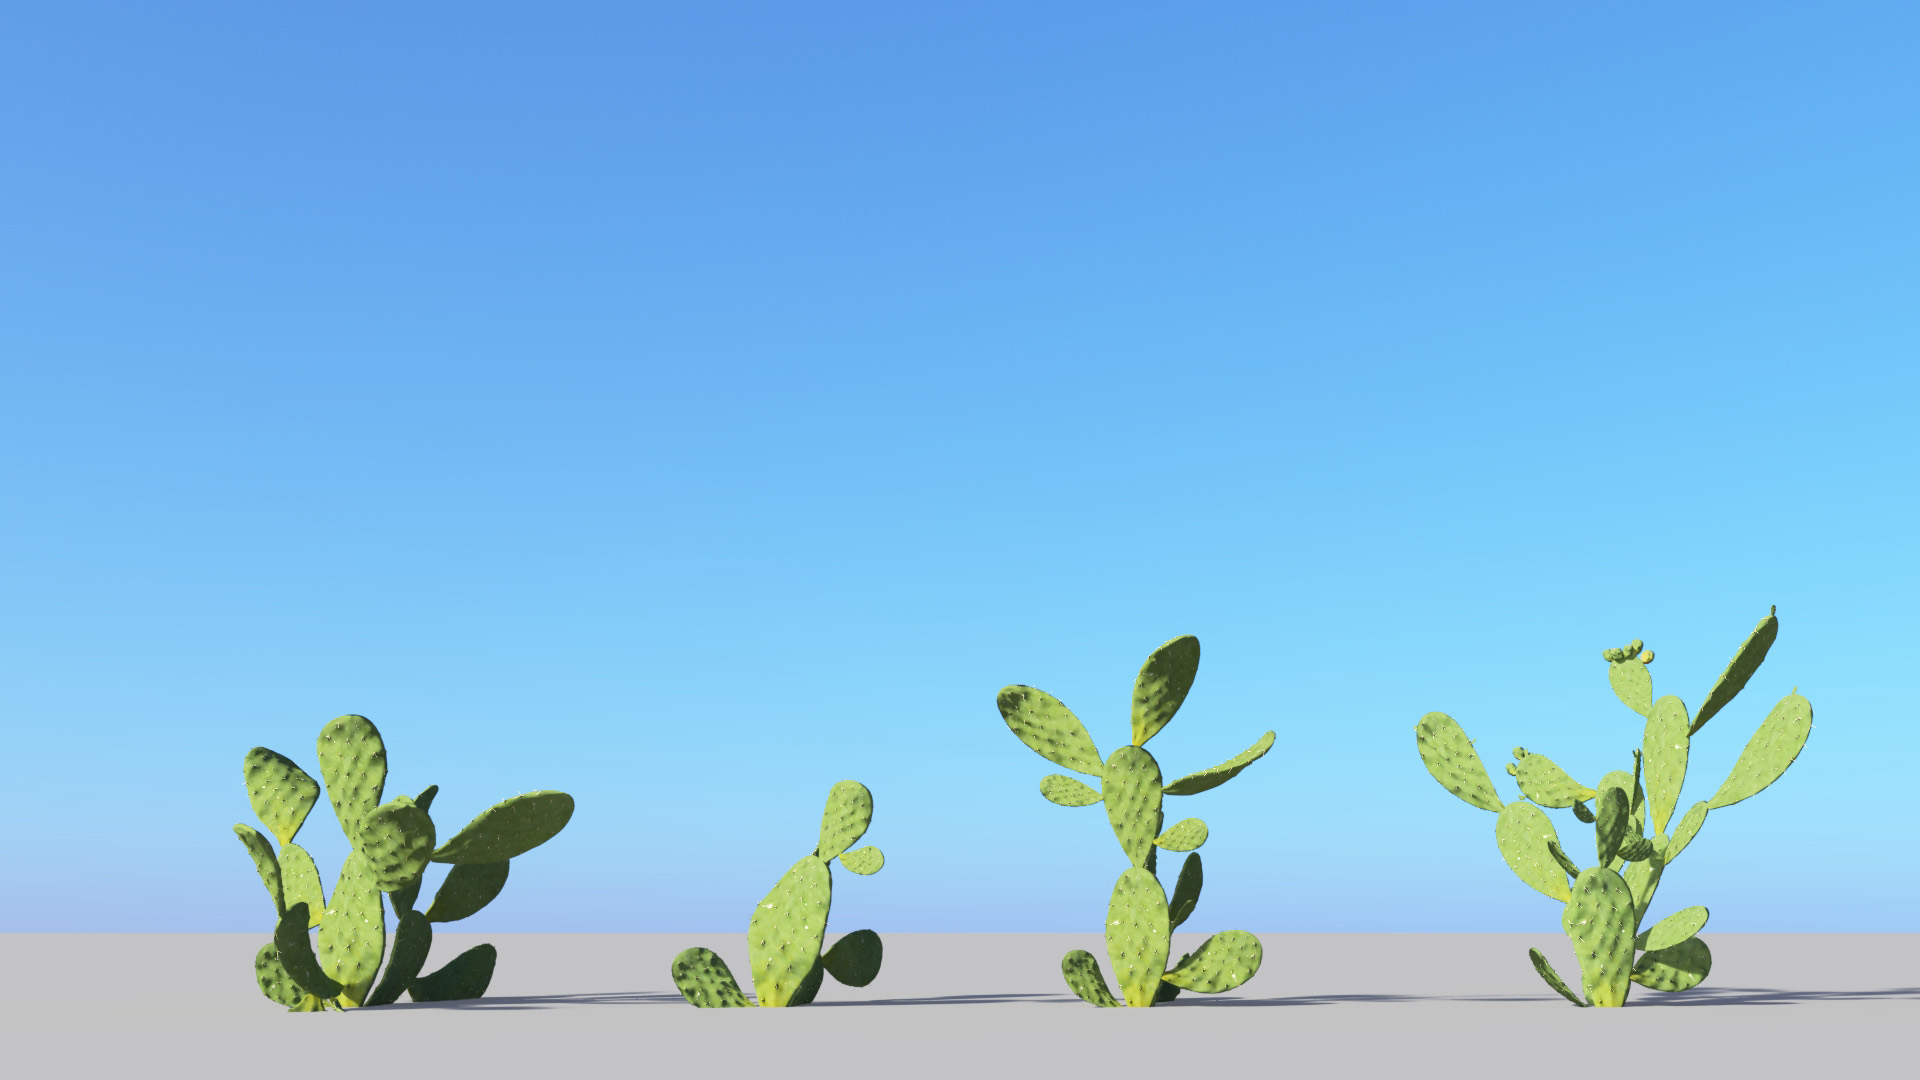 3D model of the Barbary fig Opuntia ficus-indica published parameters